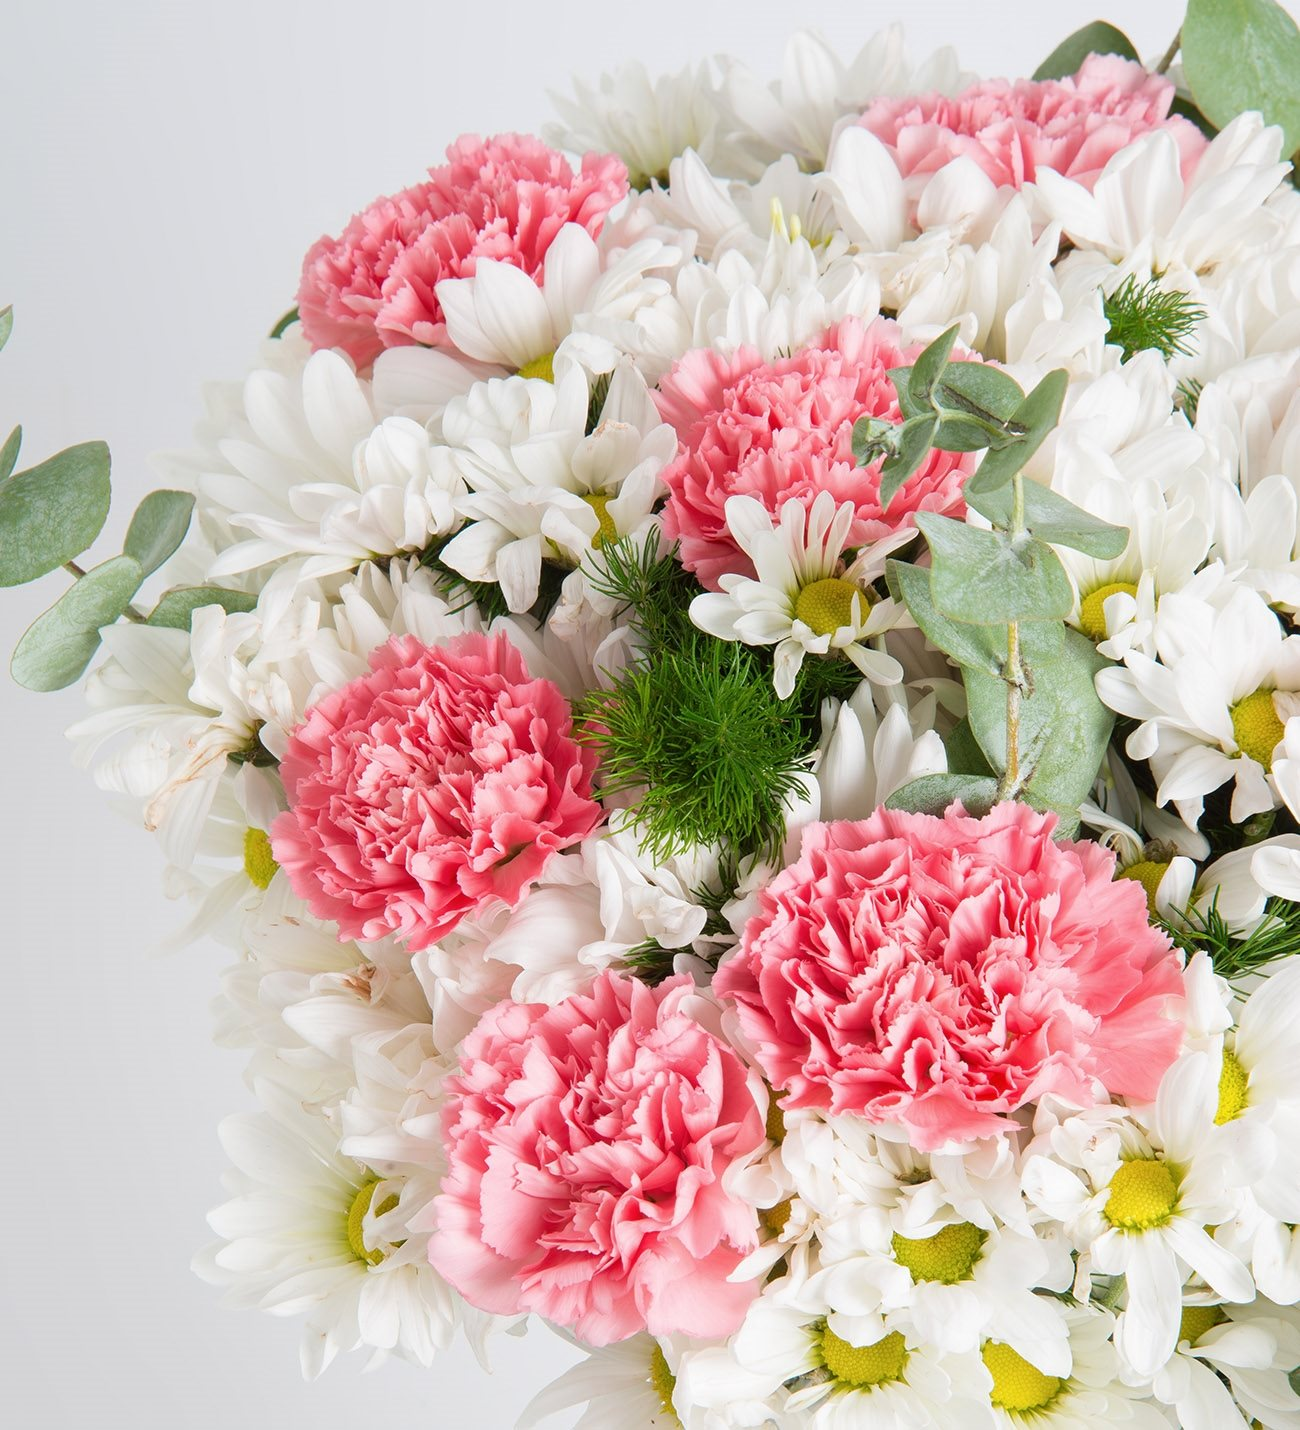 Best Funeral Flowers Near Me Burlington South Ca Flower Delivery